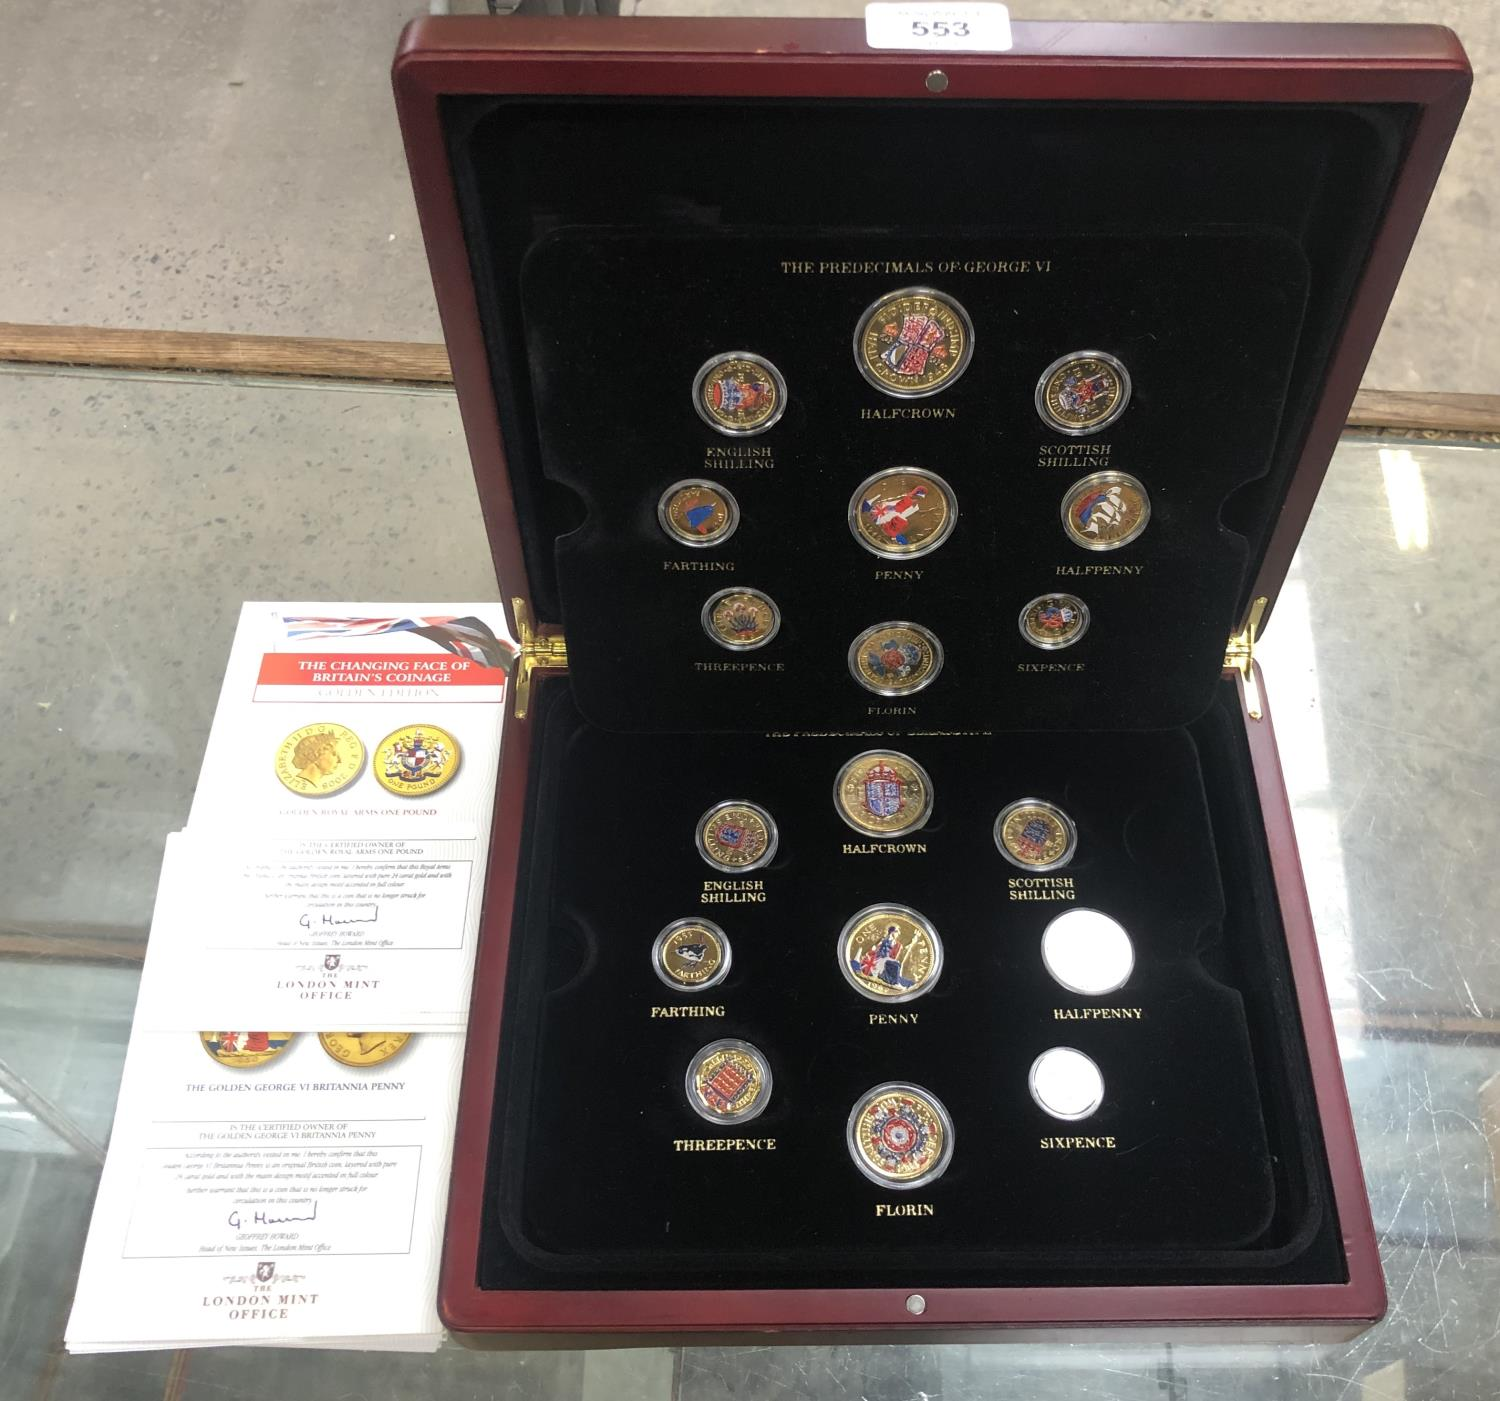 Lot 553 - THE GOLDEN EDITION CASED 'THE CHANGING FACE OF BRITAIN' COIN SET WITH C.O.A